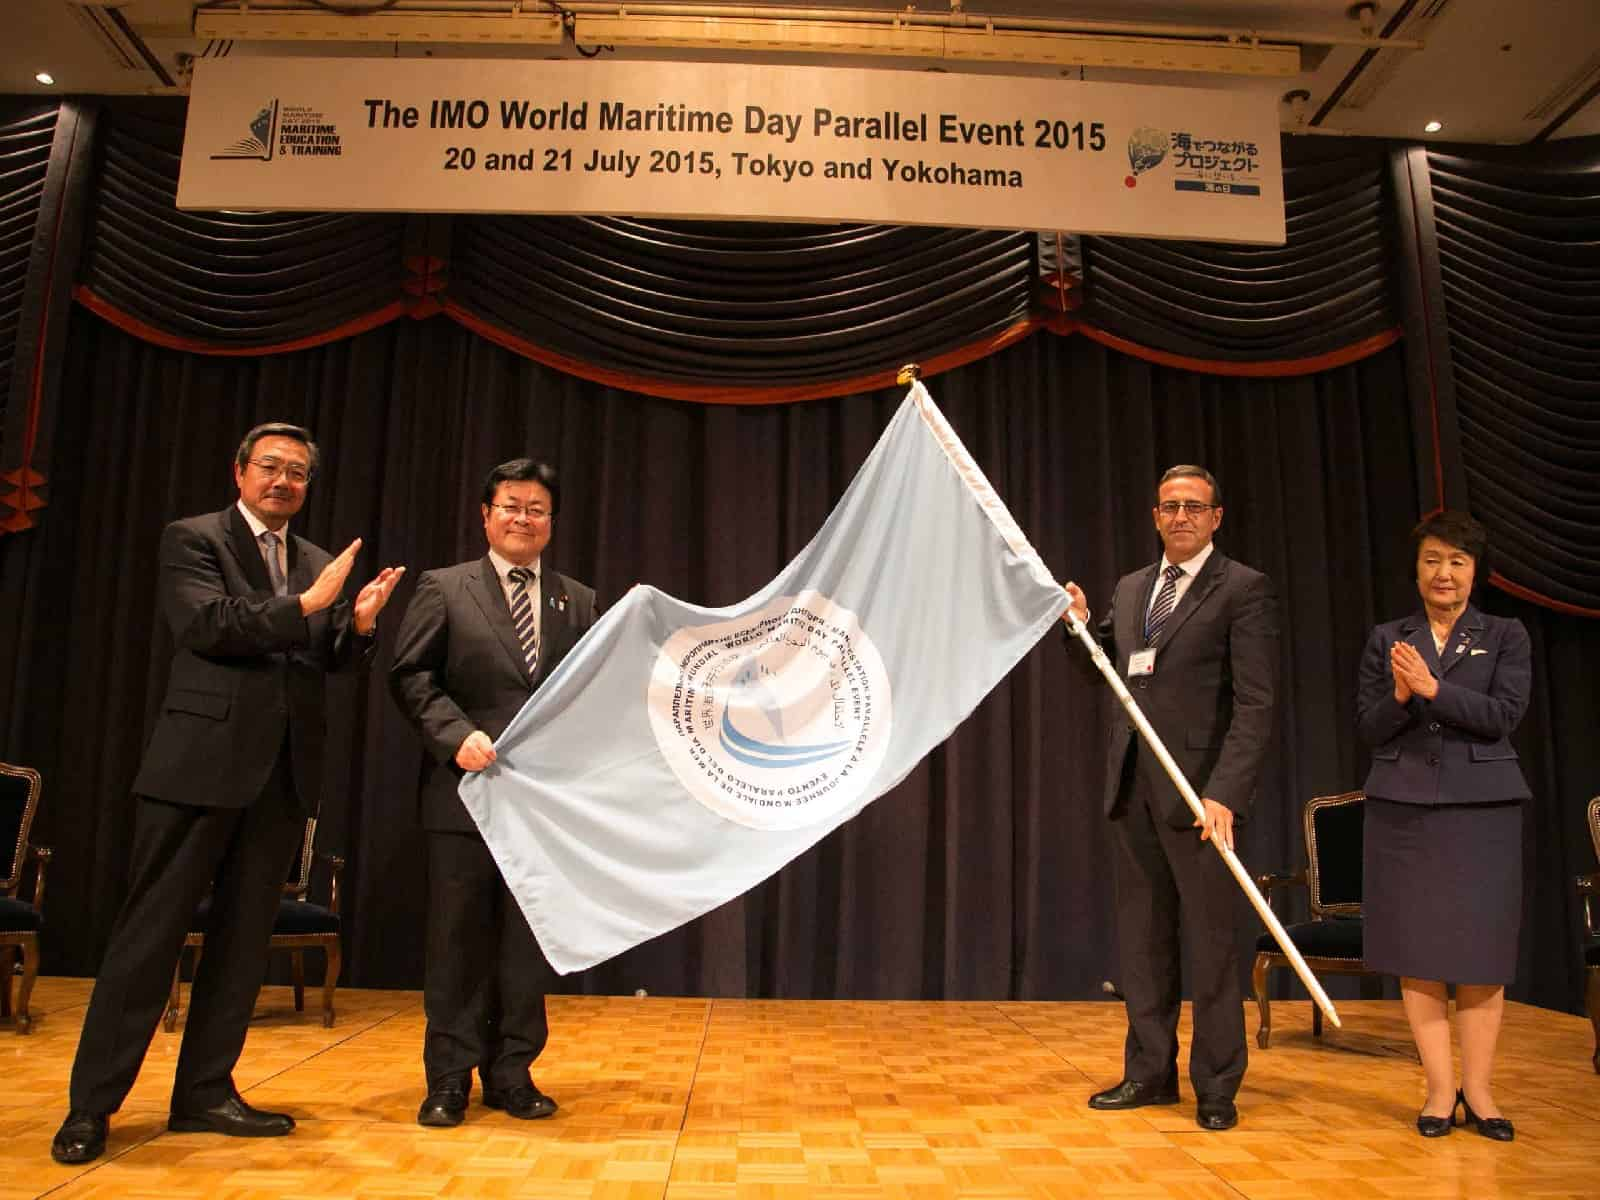 World Maritime Day Parallel Event flag handed over to Turkey